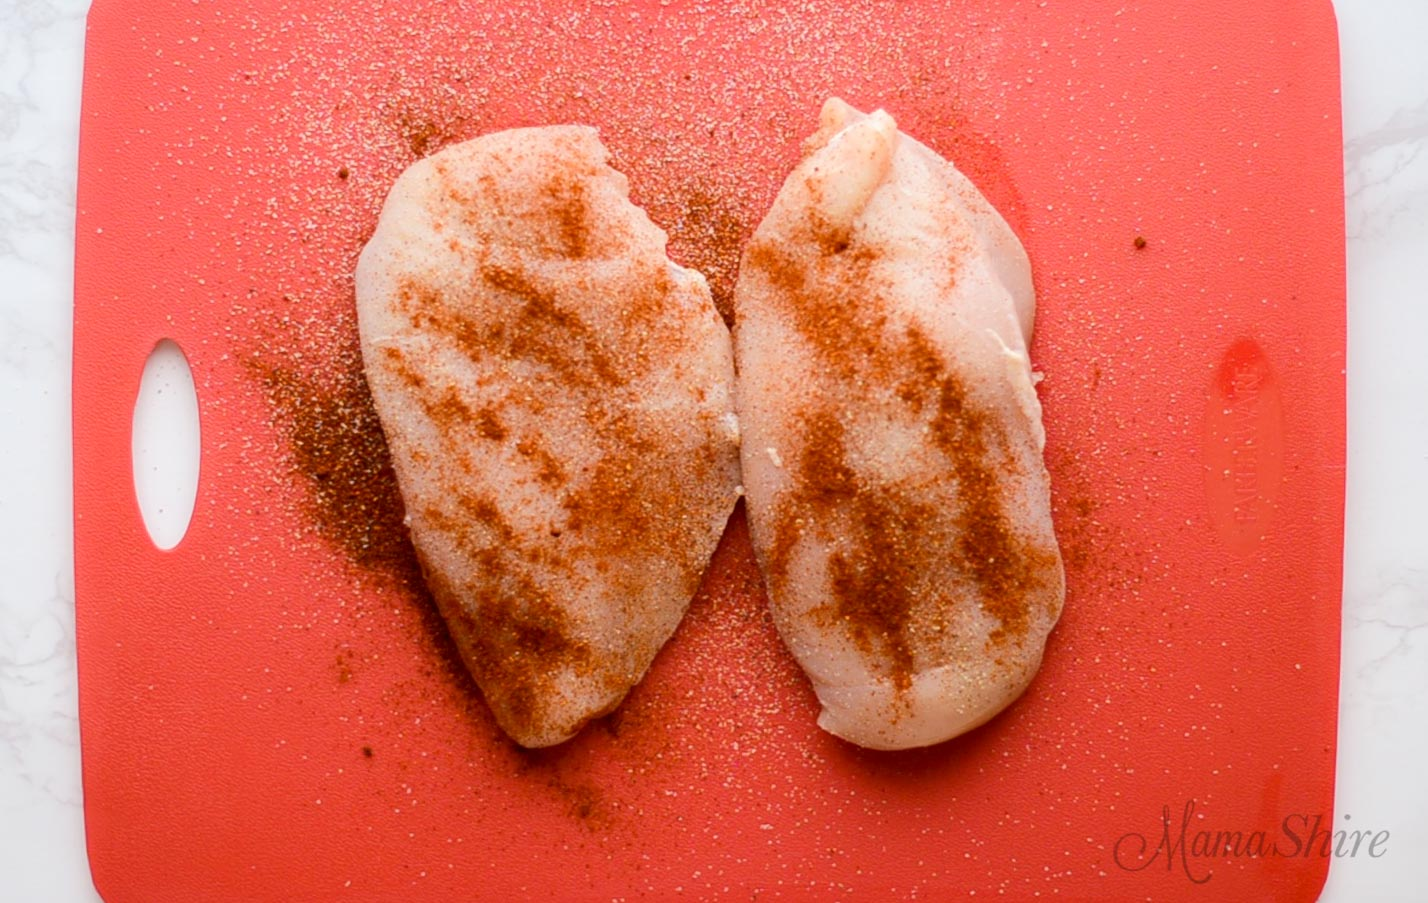 Two chicken breasts with seasoning ready to bake.